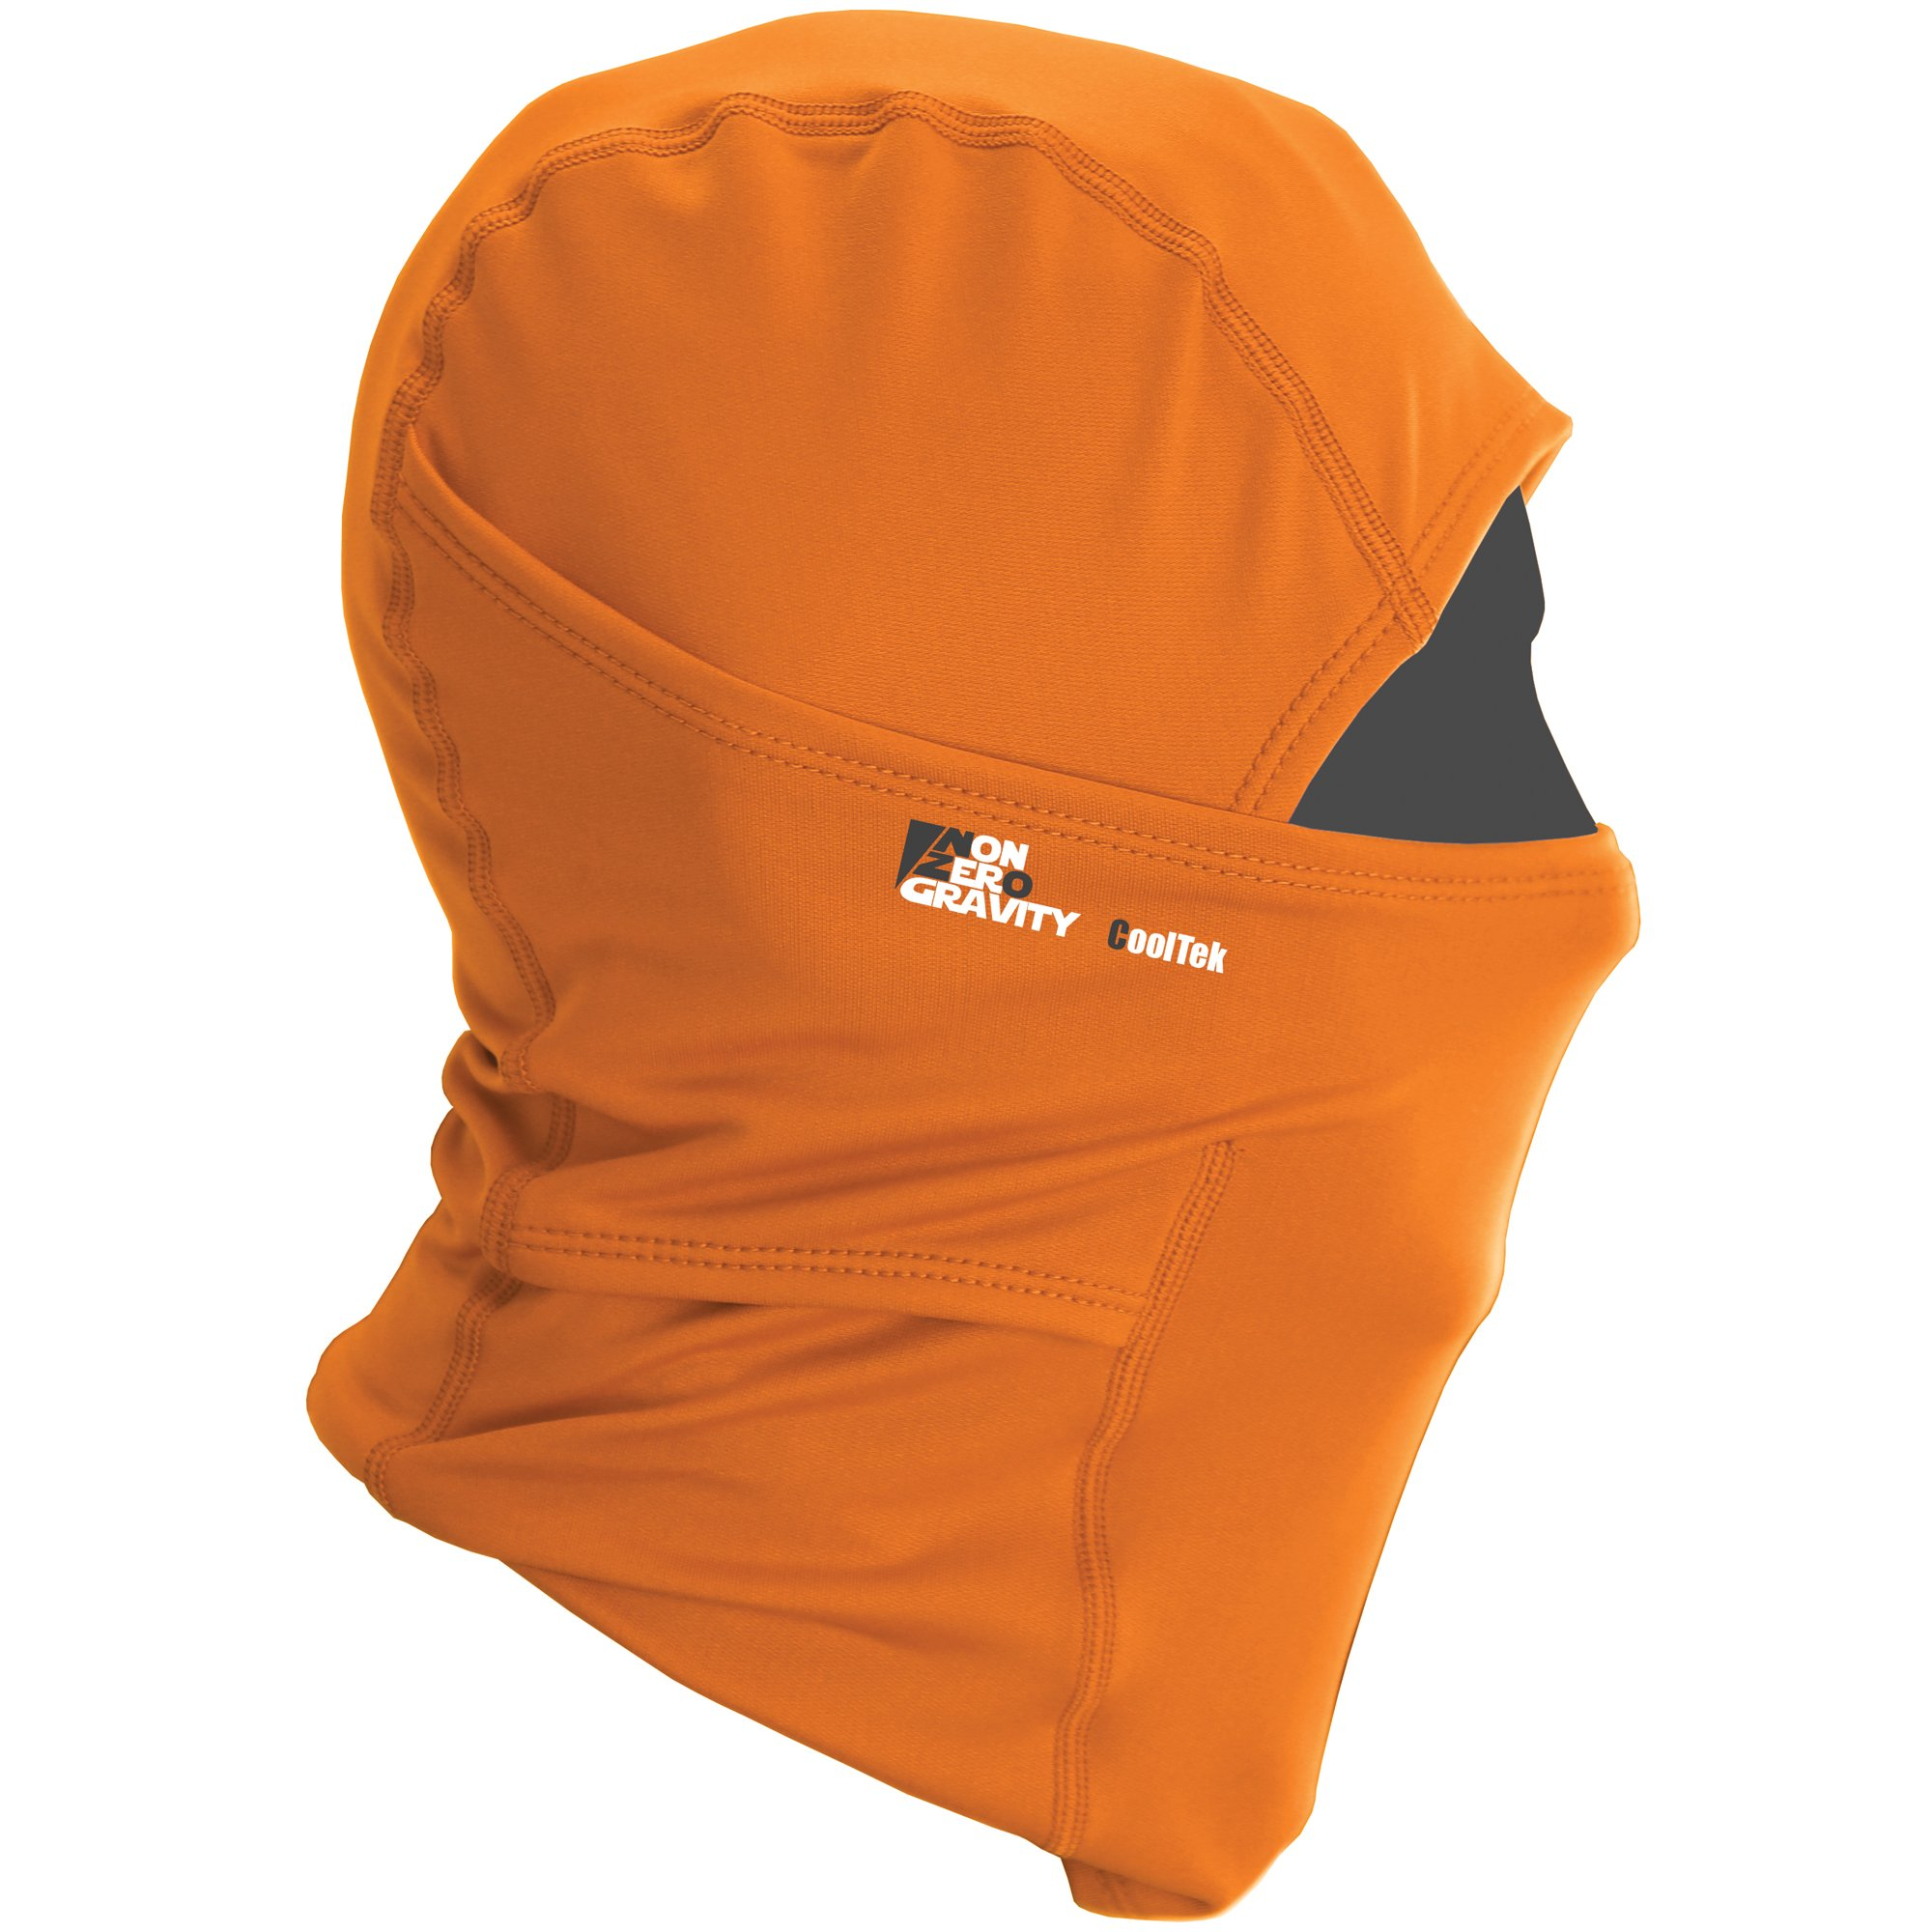 NonZero Gravity Cooling Hood | Tactical Hoodie, Head Wrap And Neck Scarf For Cycling, Biking And Sports (Tactical, Orange)